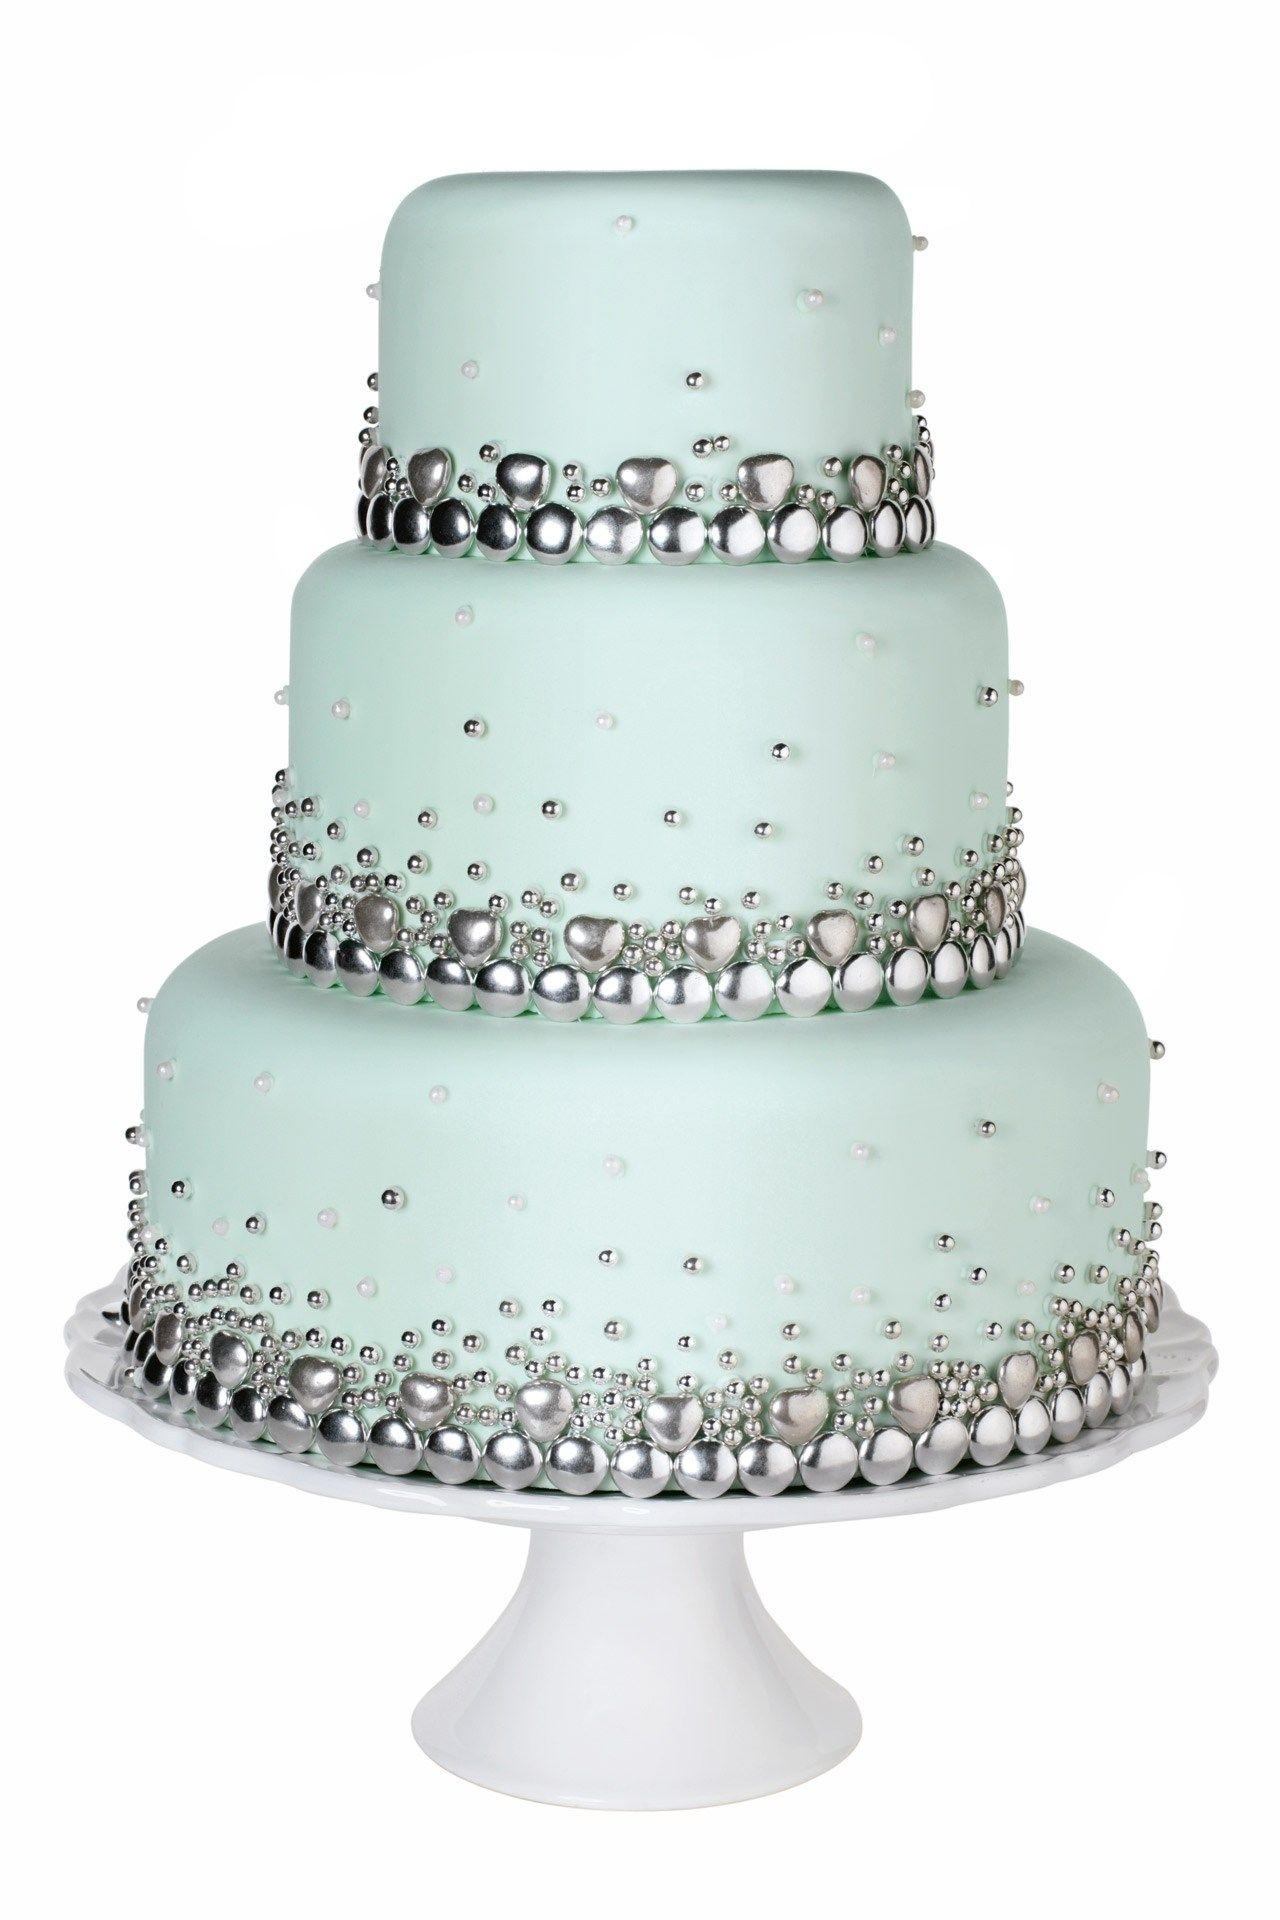 bling wedding cakes uk baking goes bling bling bling bling and cake 11936